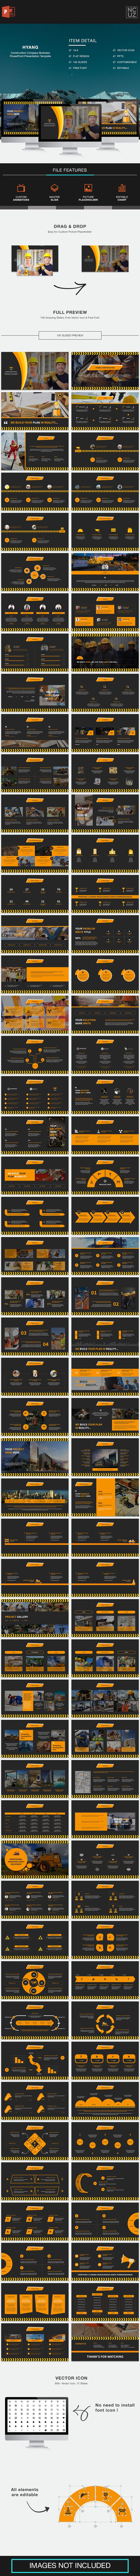 Hyang Construction Powerpoint Template